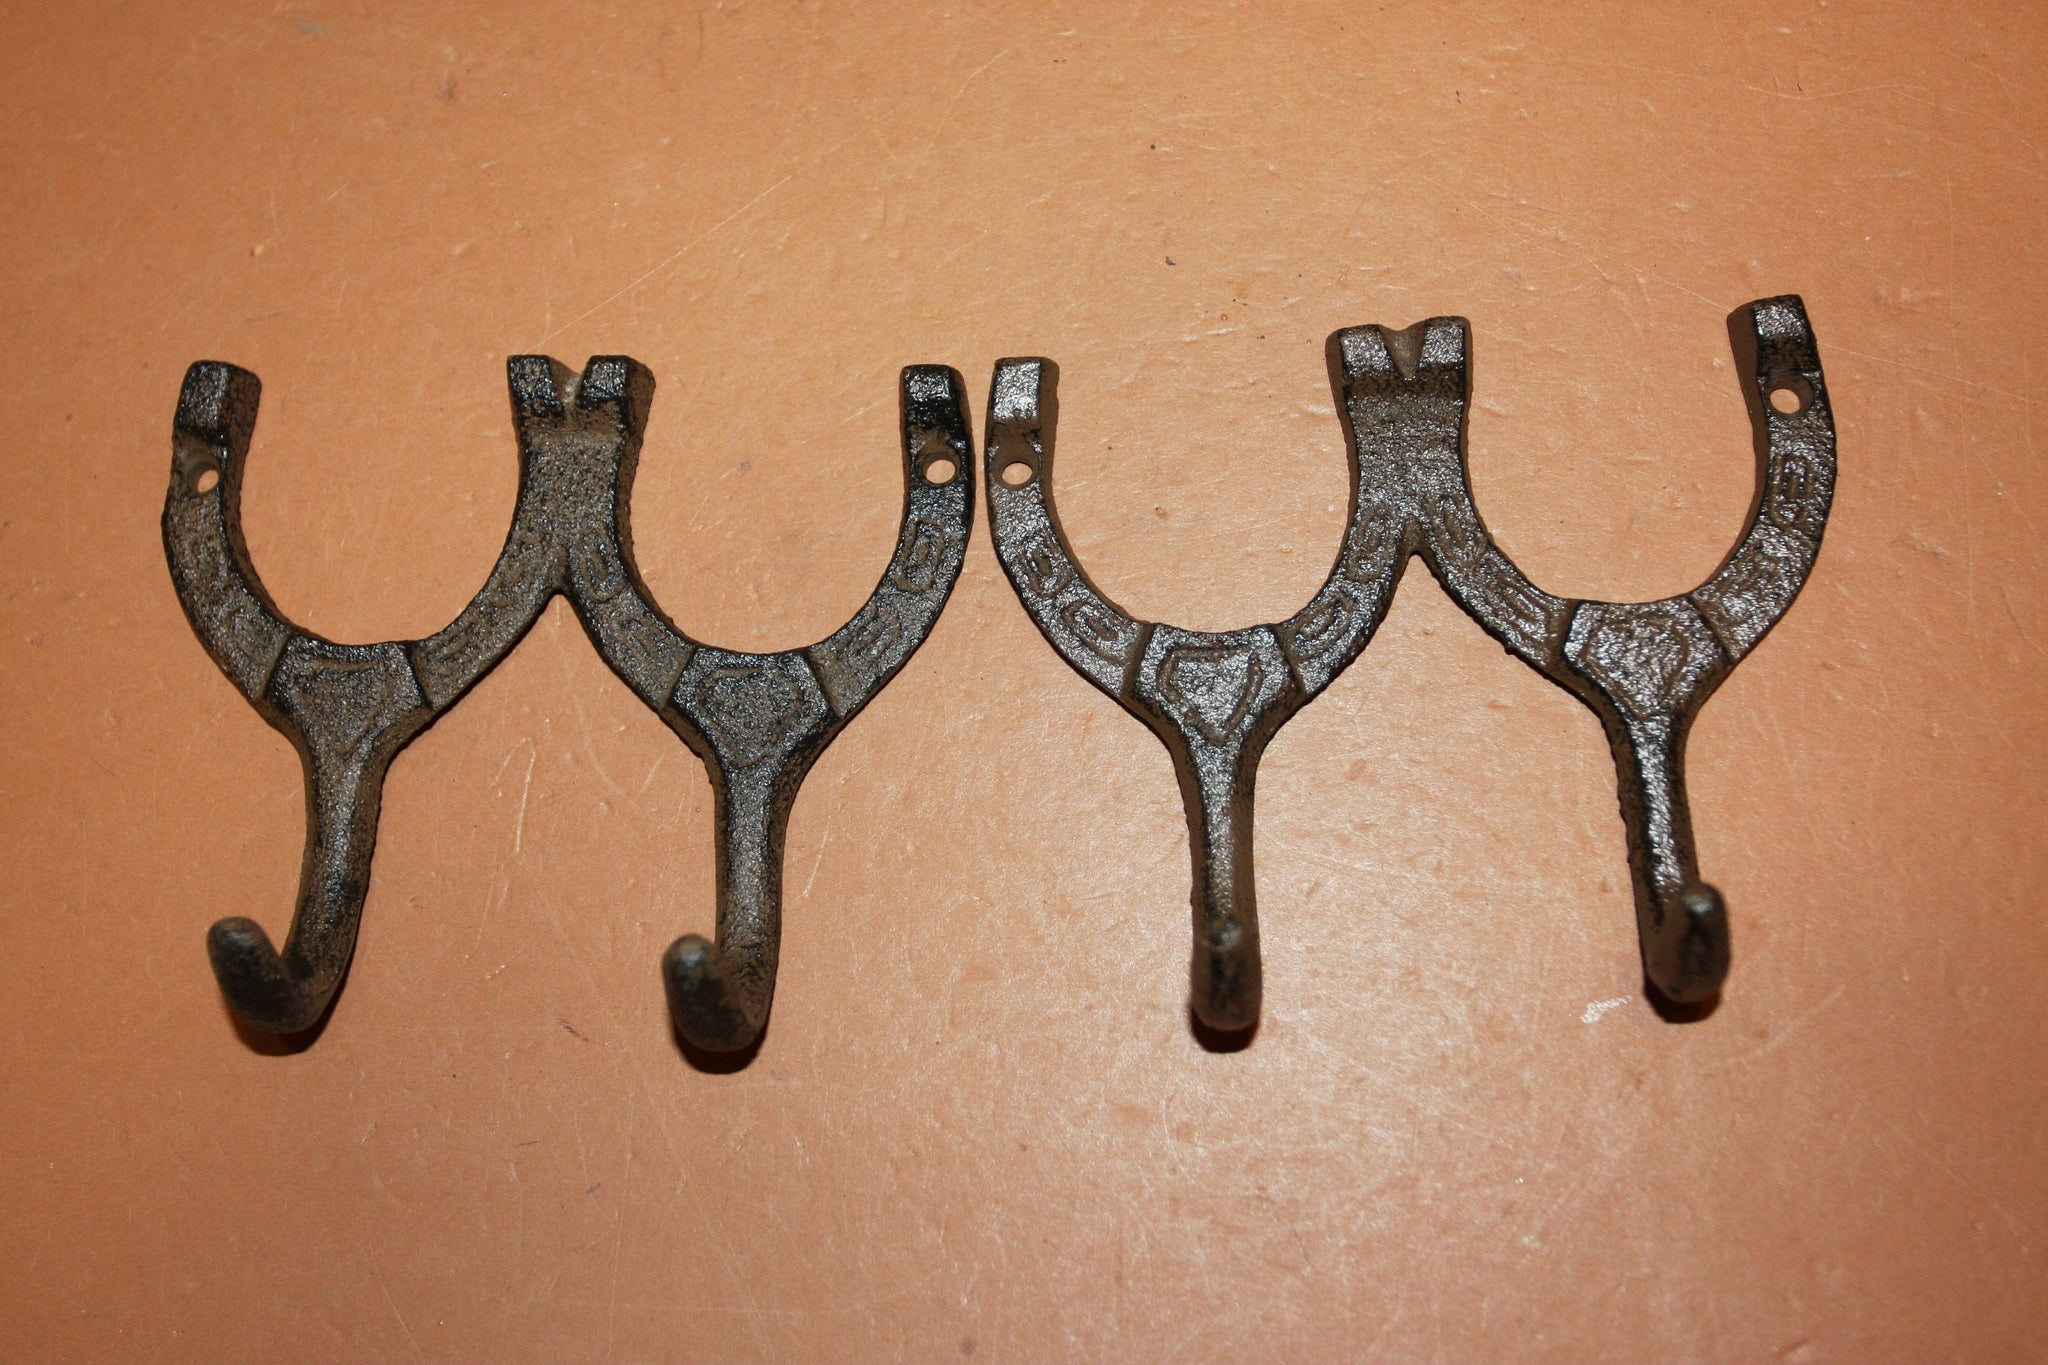 Horseshoe Towel Hooks, Cast Iron 4 inch Volume Priced, W-9